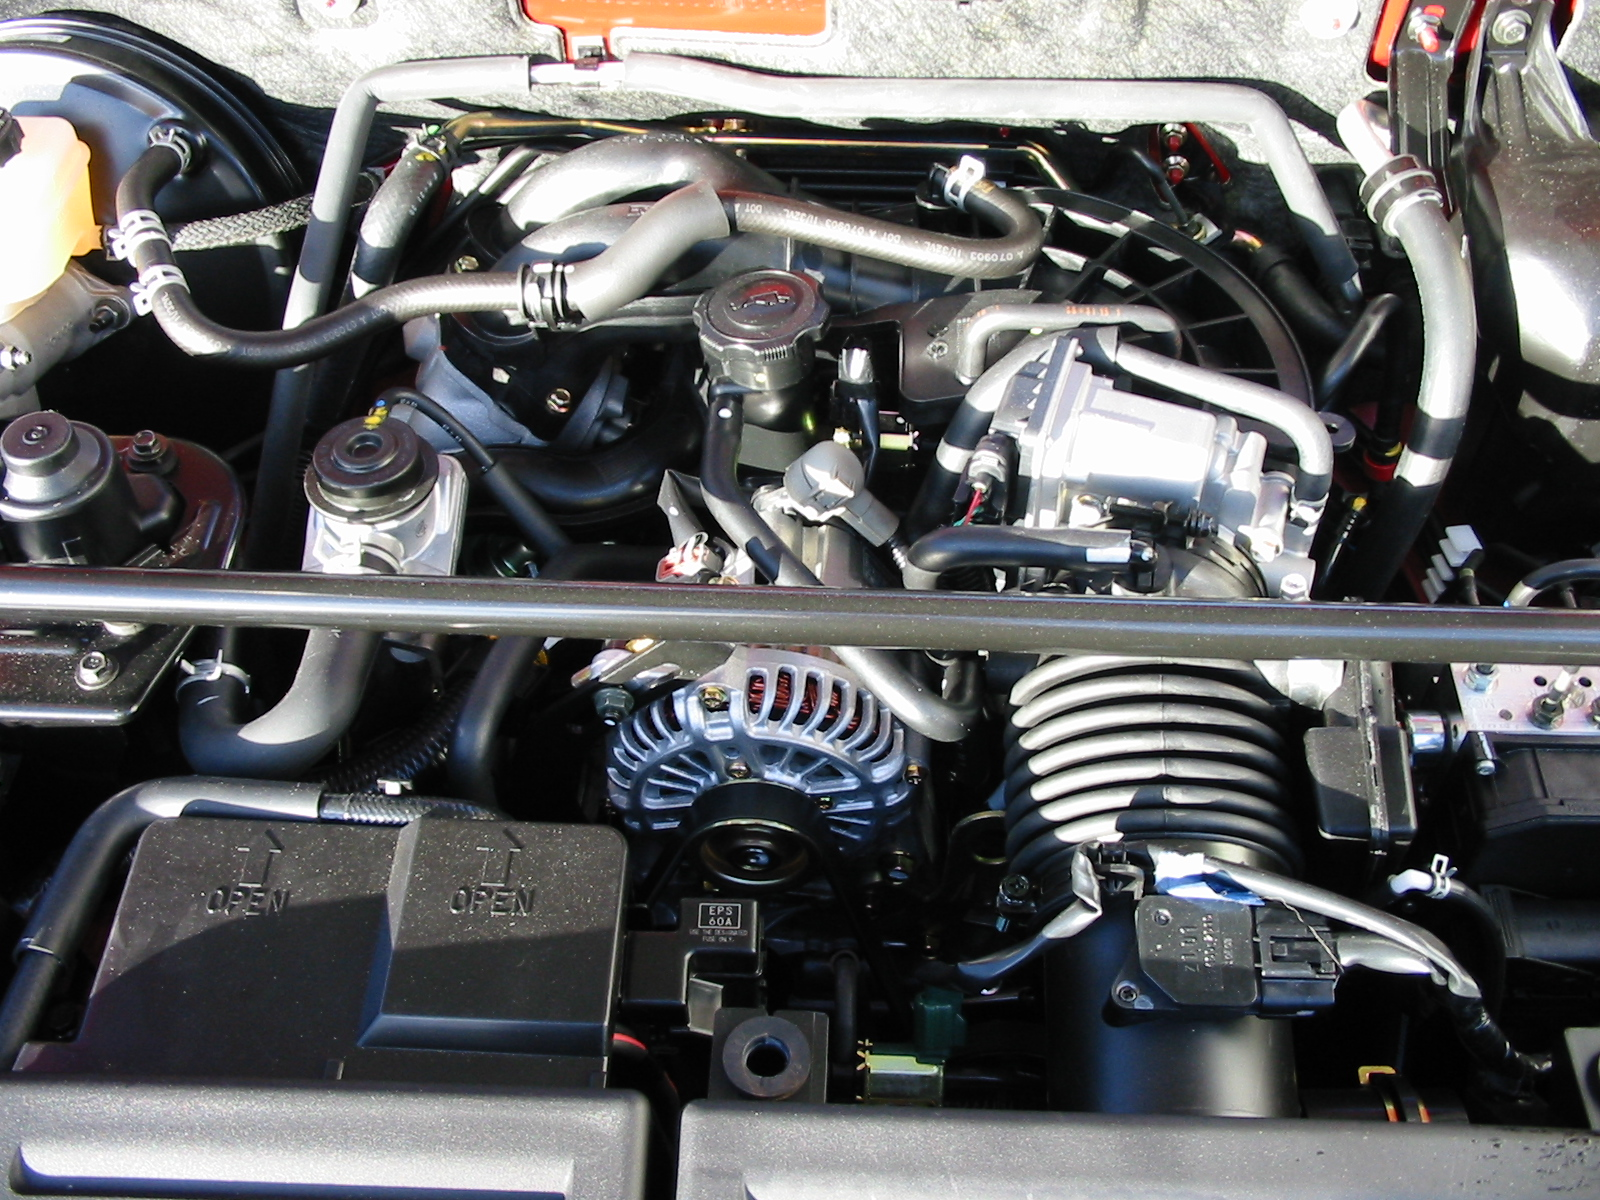 Mazda RX-8 engine #1